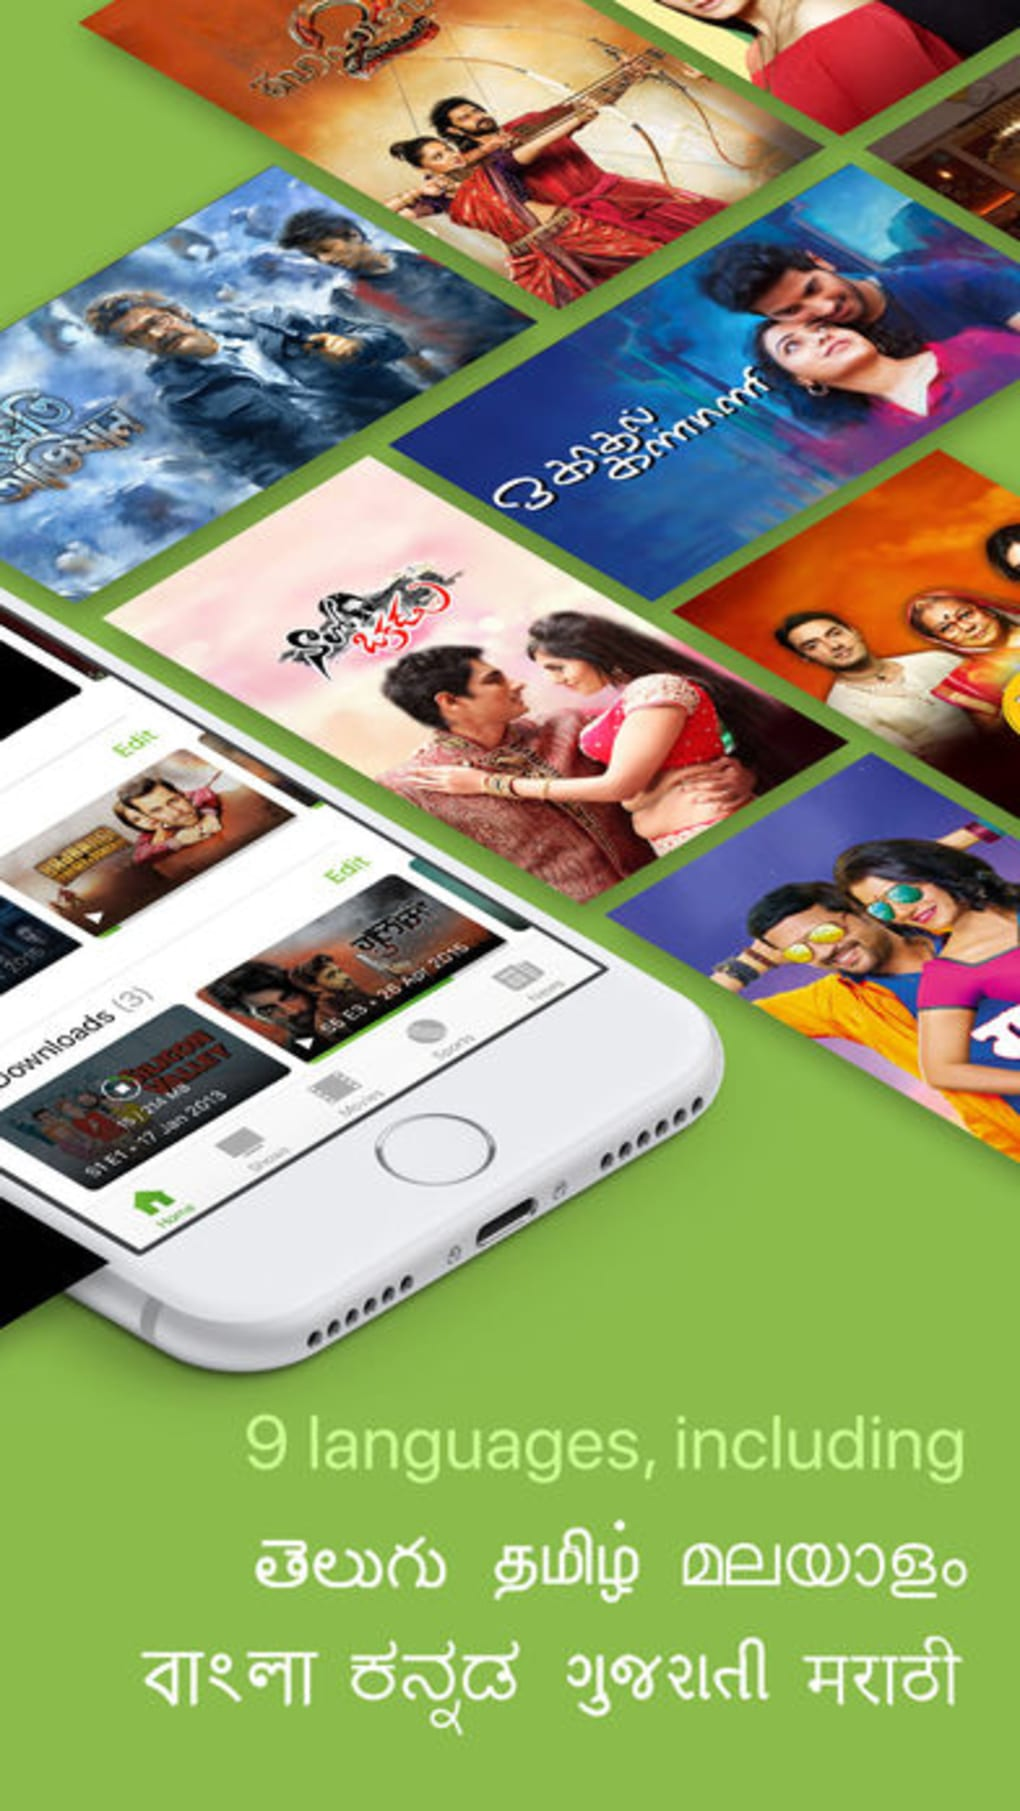 Hotstar for iPhone - Download